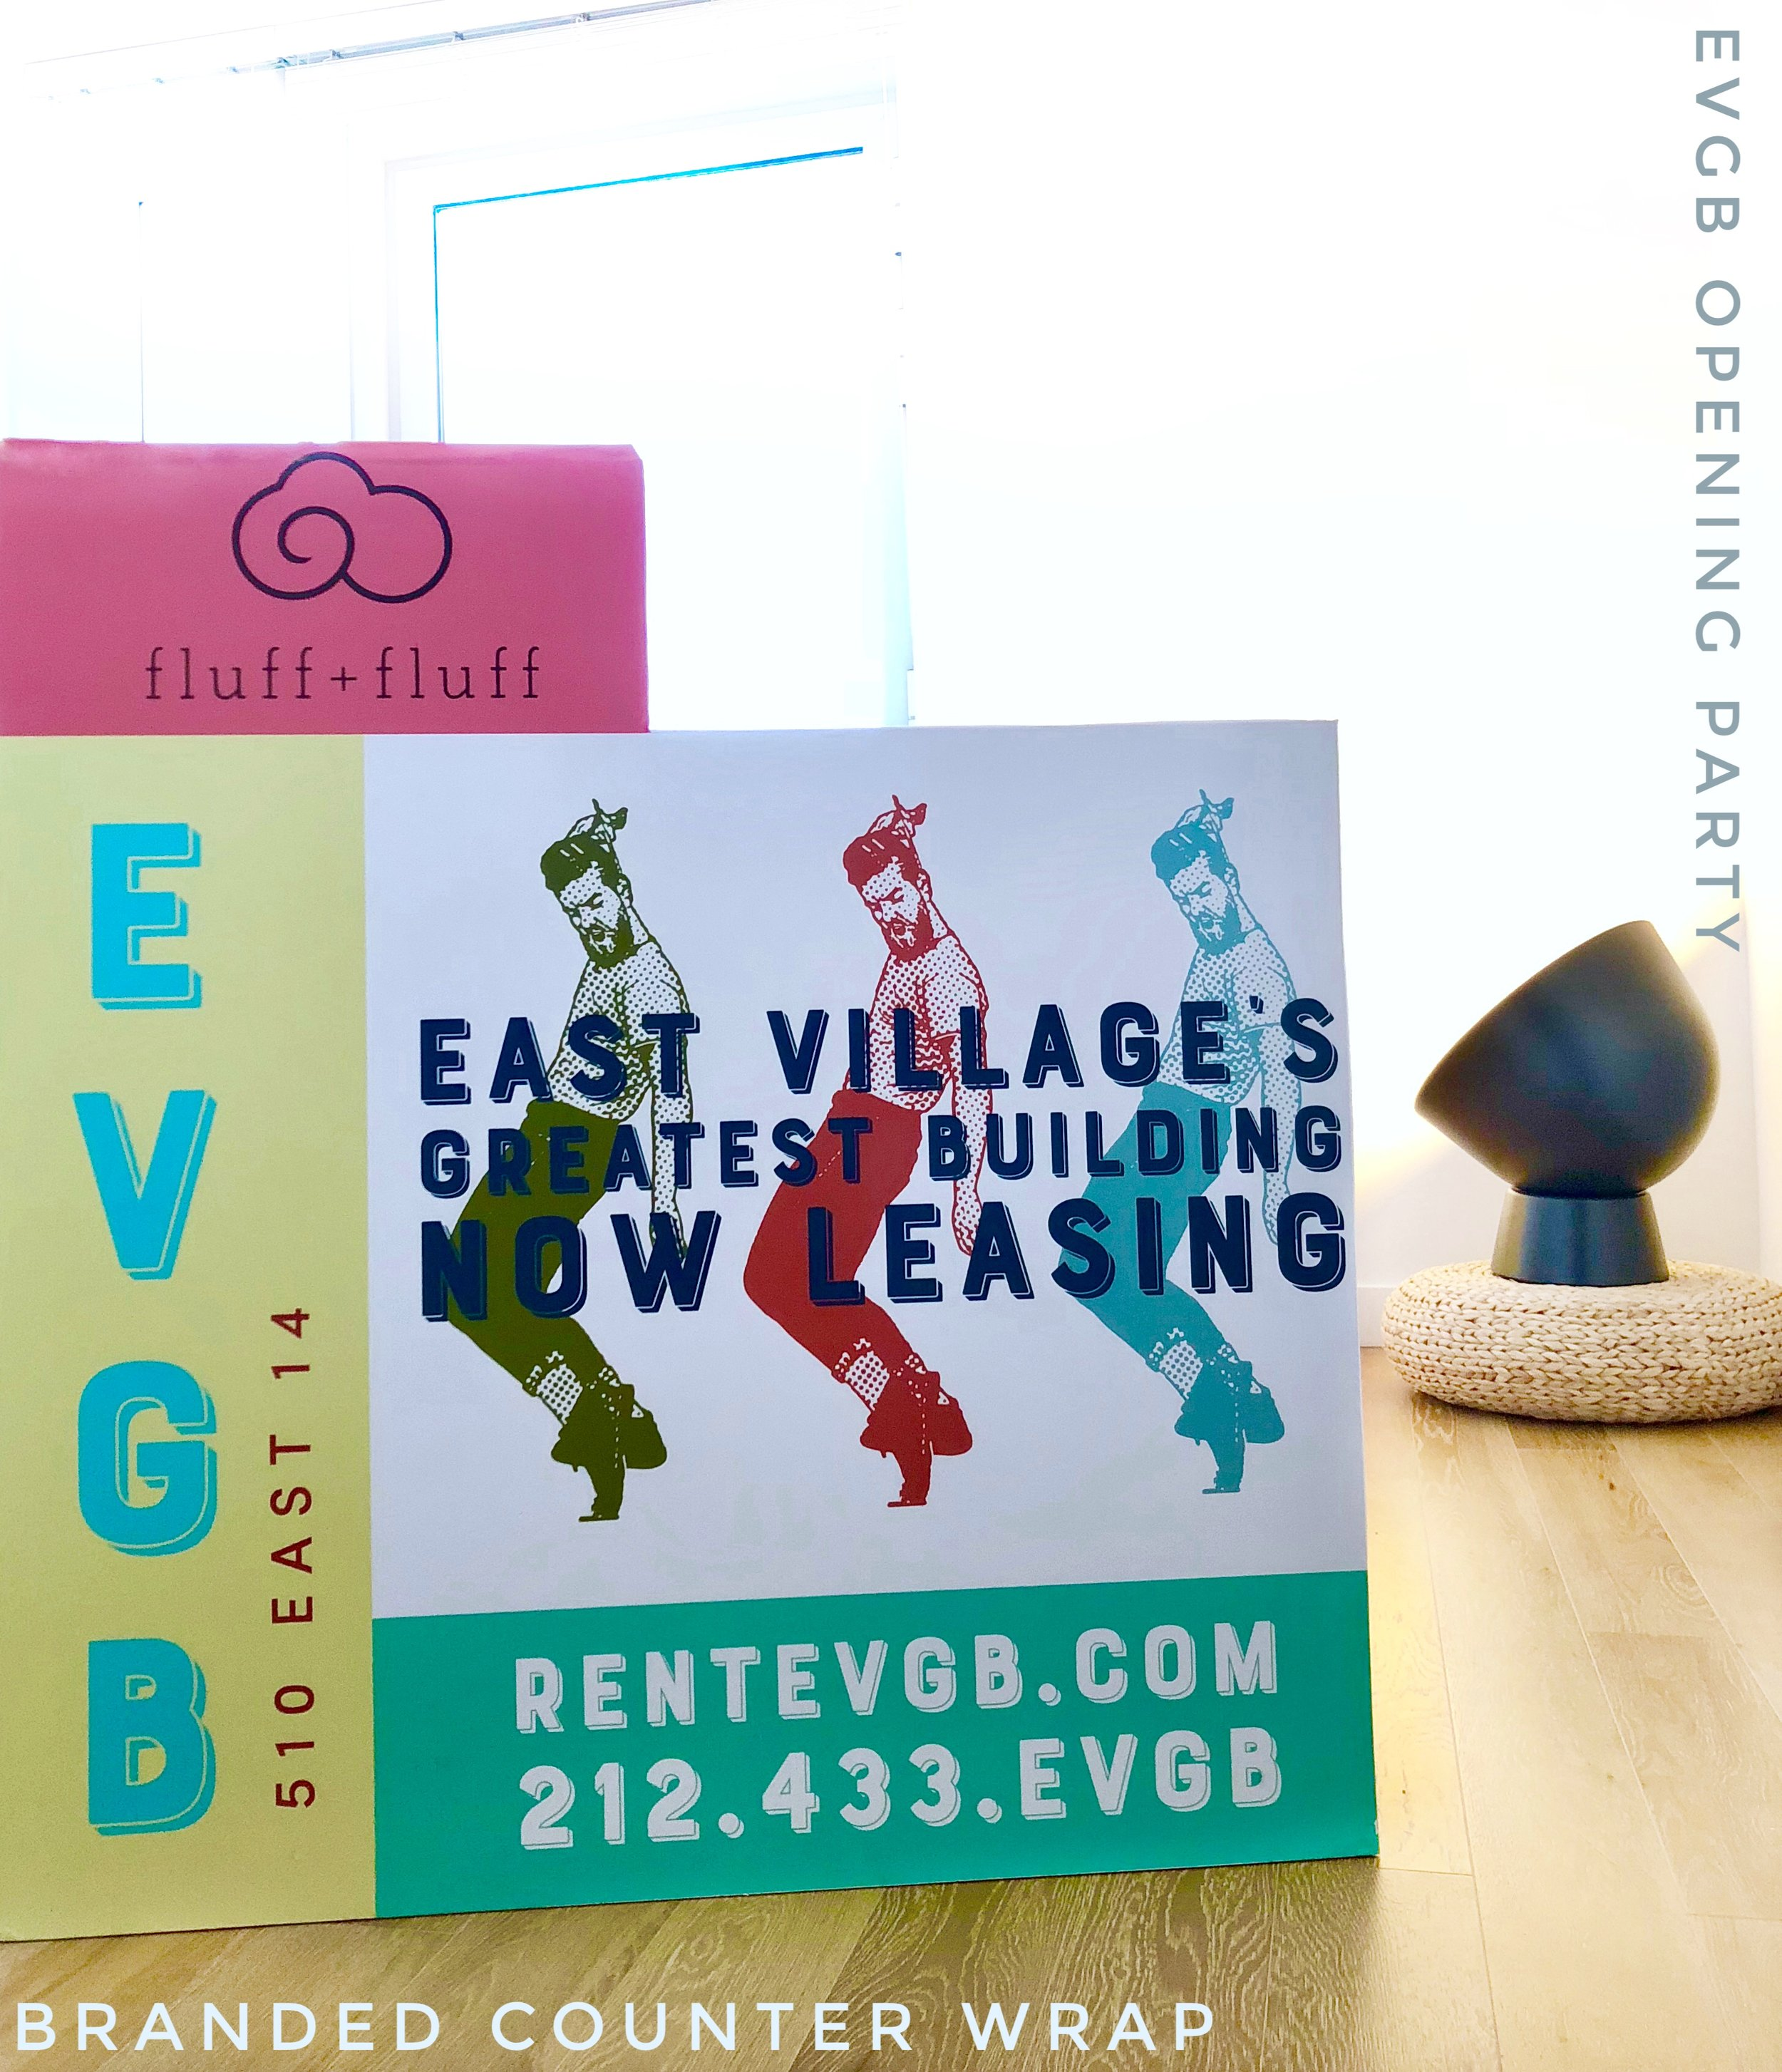 Branded Counter Wrap for EVGB Opening